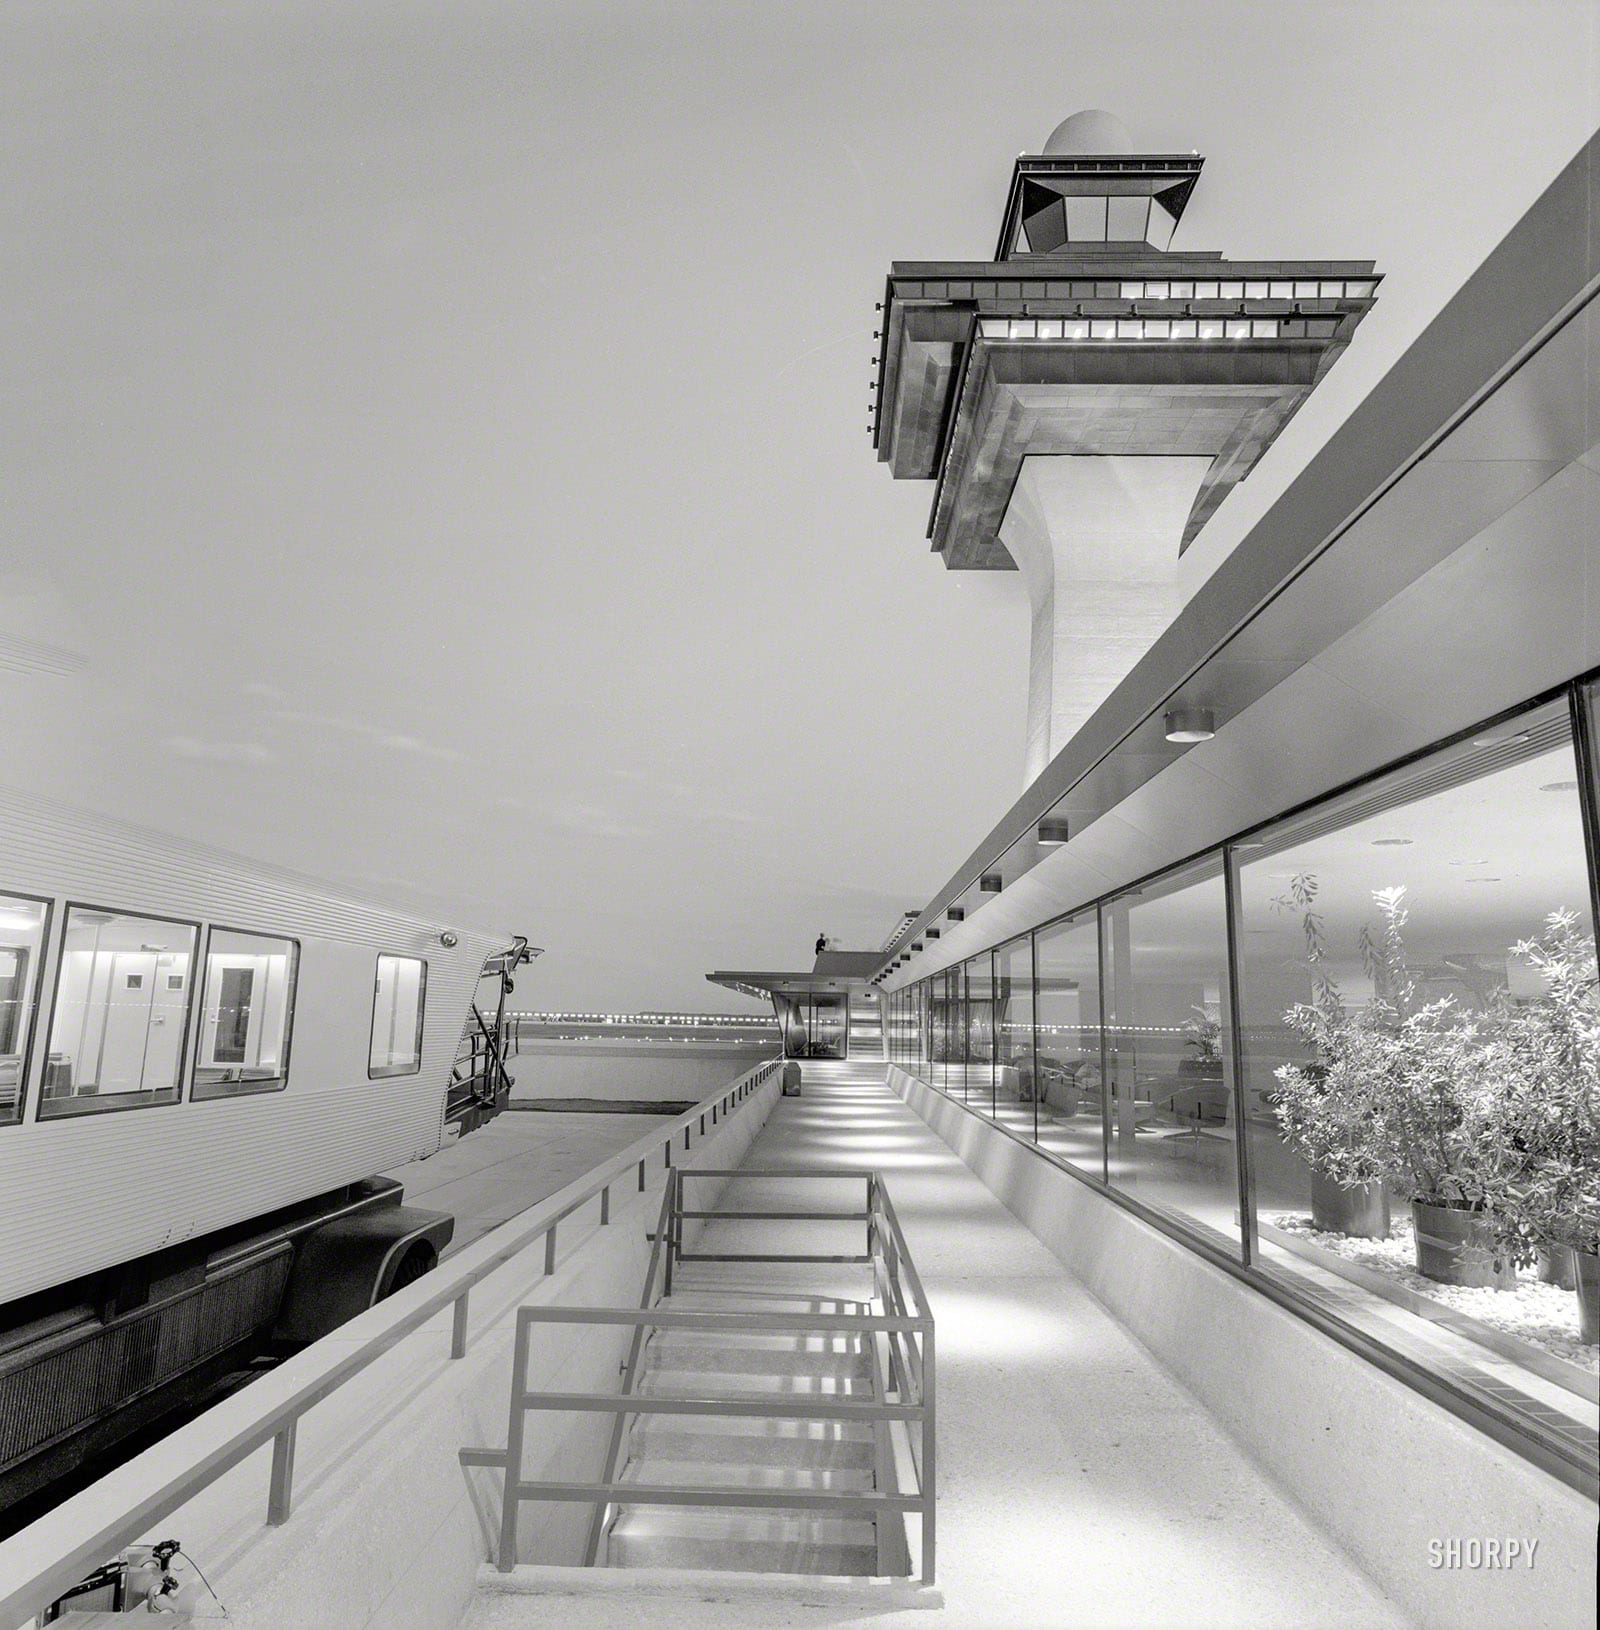 """Dulles International Airport, Chantilly, Virginia, 1958-63. Eero Saarinen, architect. Mobile lounge, control tower and terminal."" All we need now is an airplane. Medium format negative by Balthazar Korab."